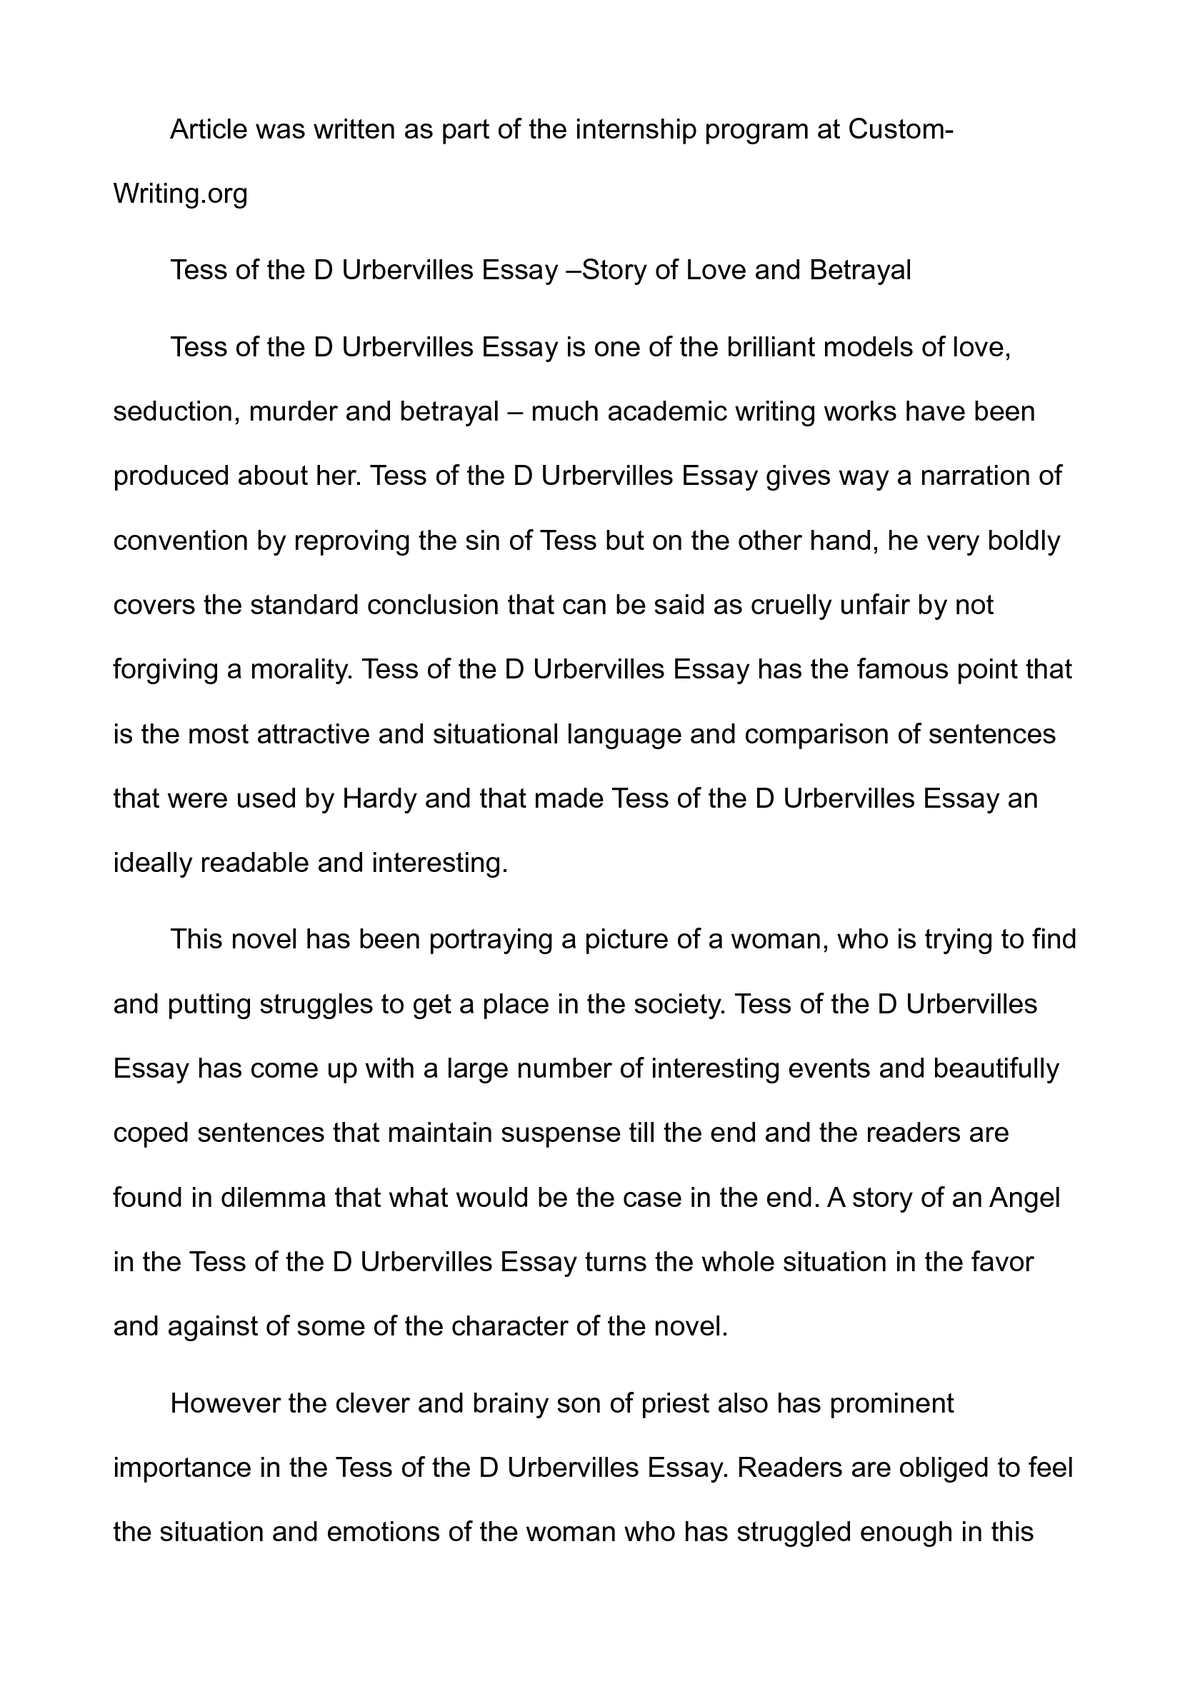 tess of the d urbervilles essay story of love and betrayal